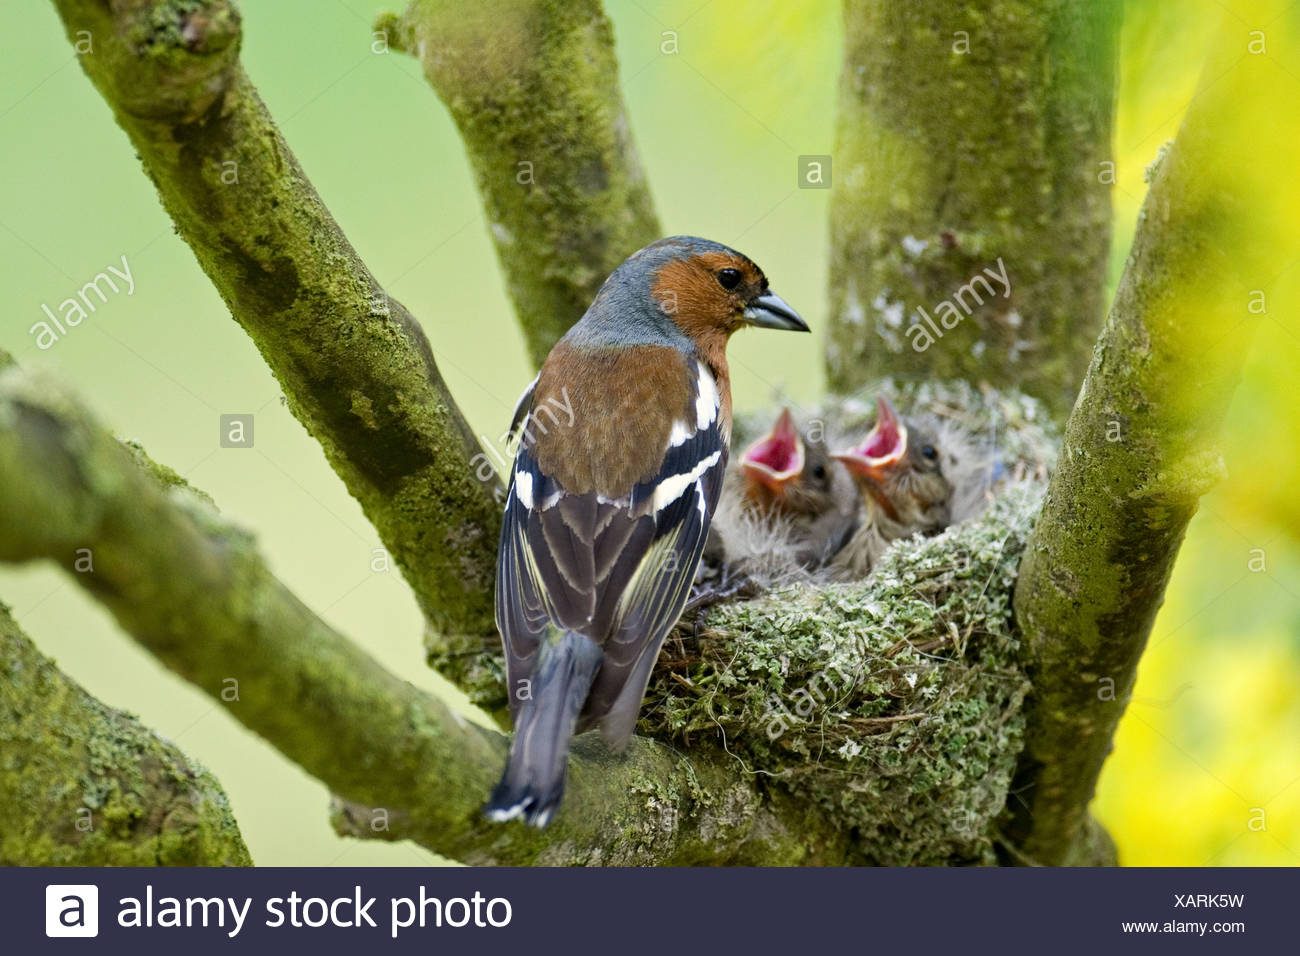 caffinch at nest with fledglings / Fringilla coelebs - Stock Image